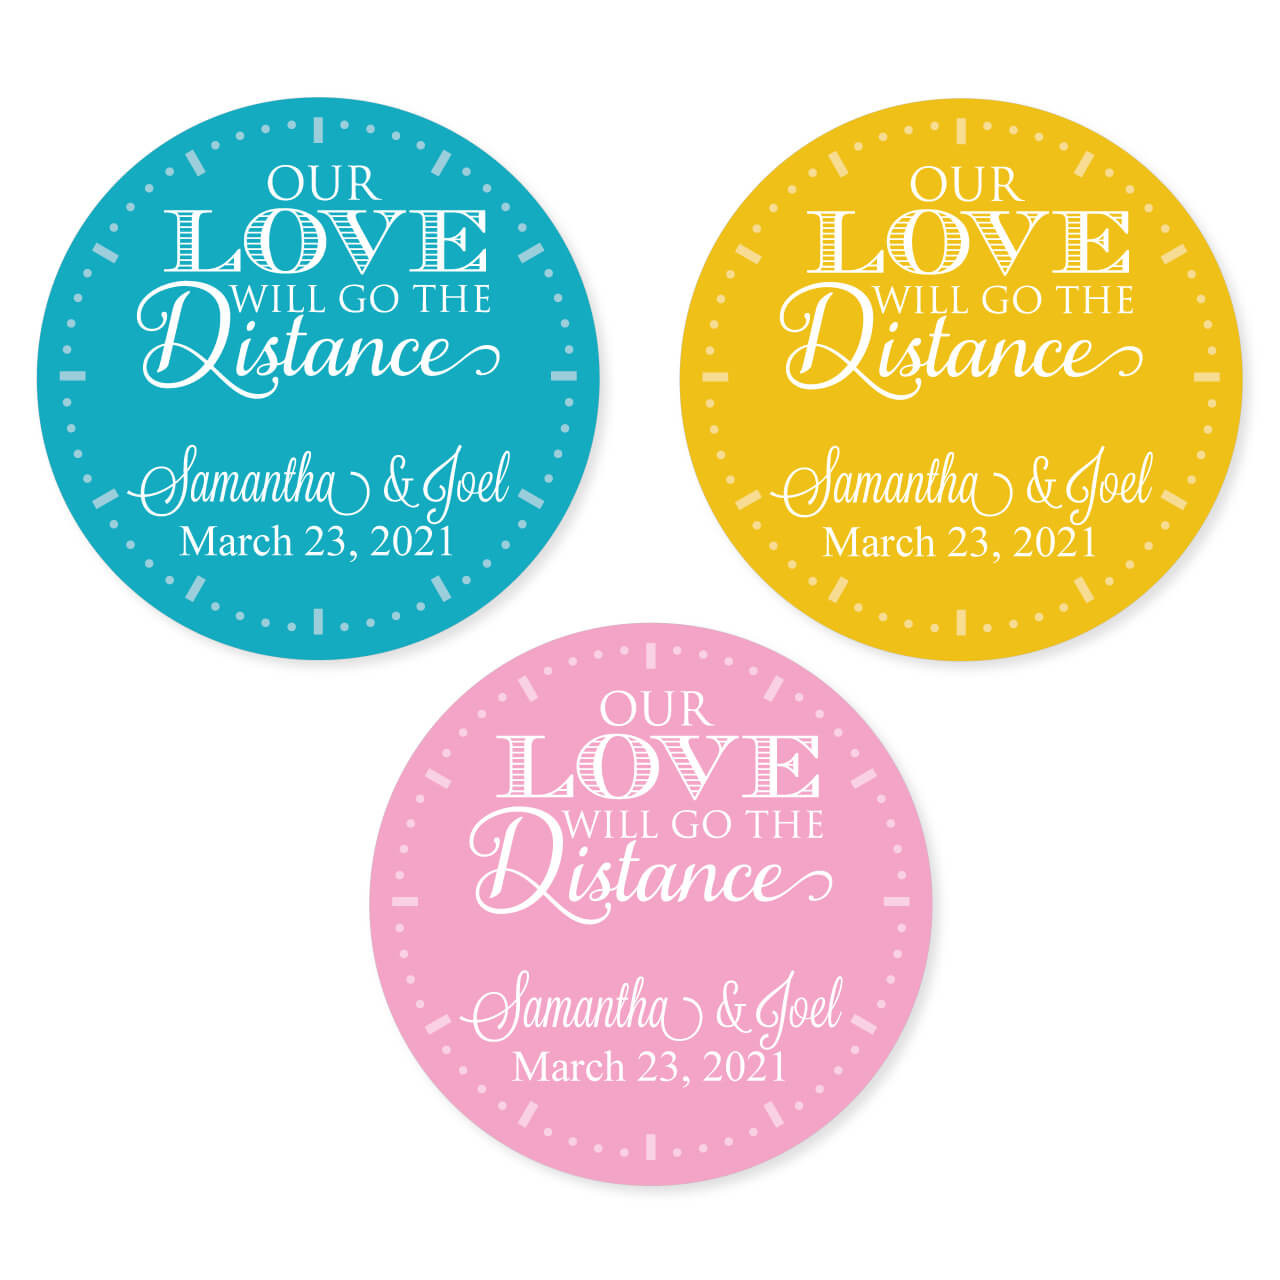 Our love will go the distance personalized round stickers set of 20